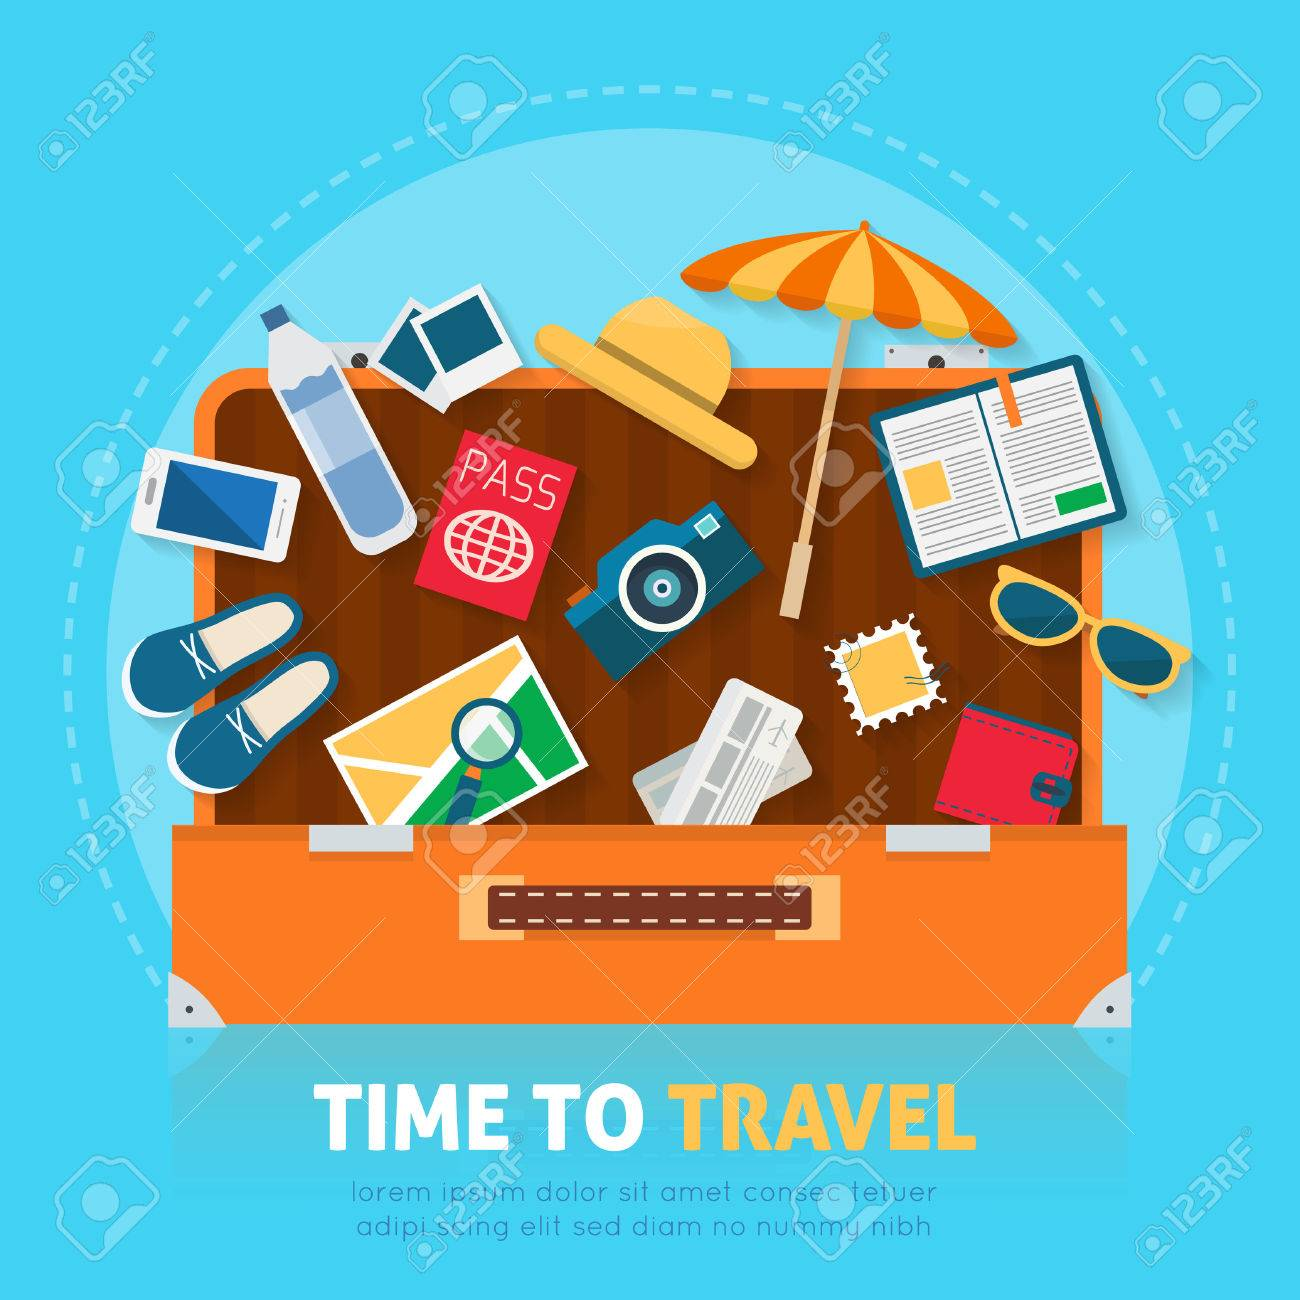 Open baggage, luggage, suitcases with travel icons and objects. Flat style vector illustration. - 52617219